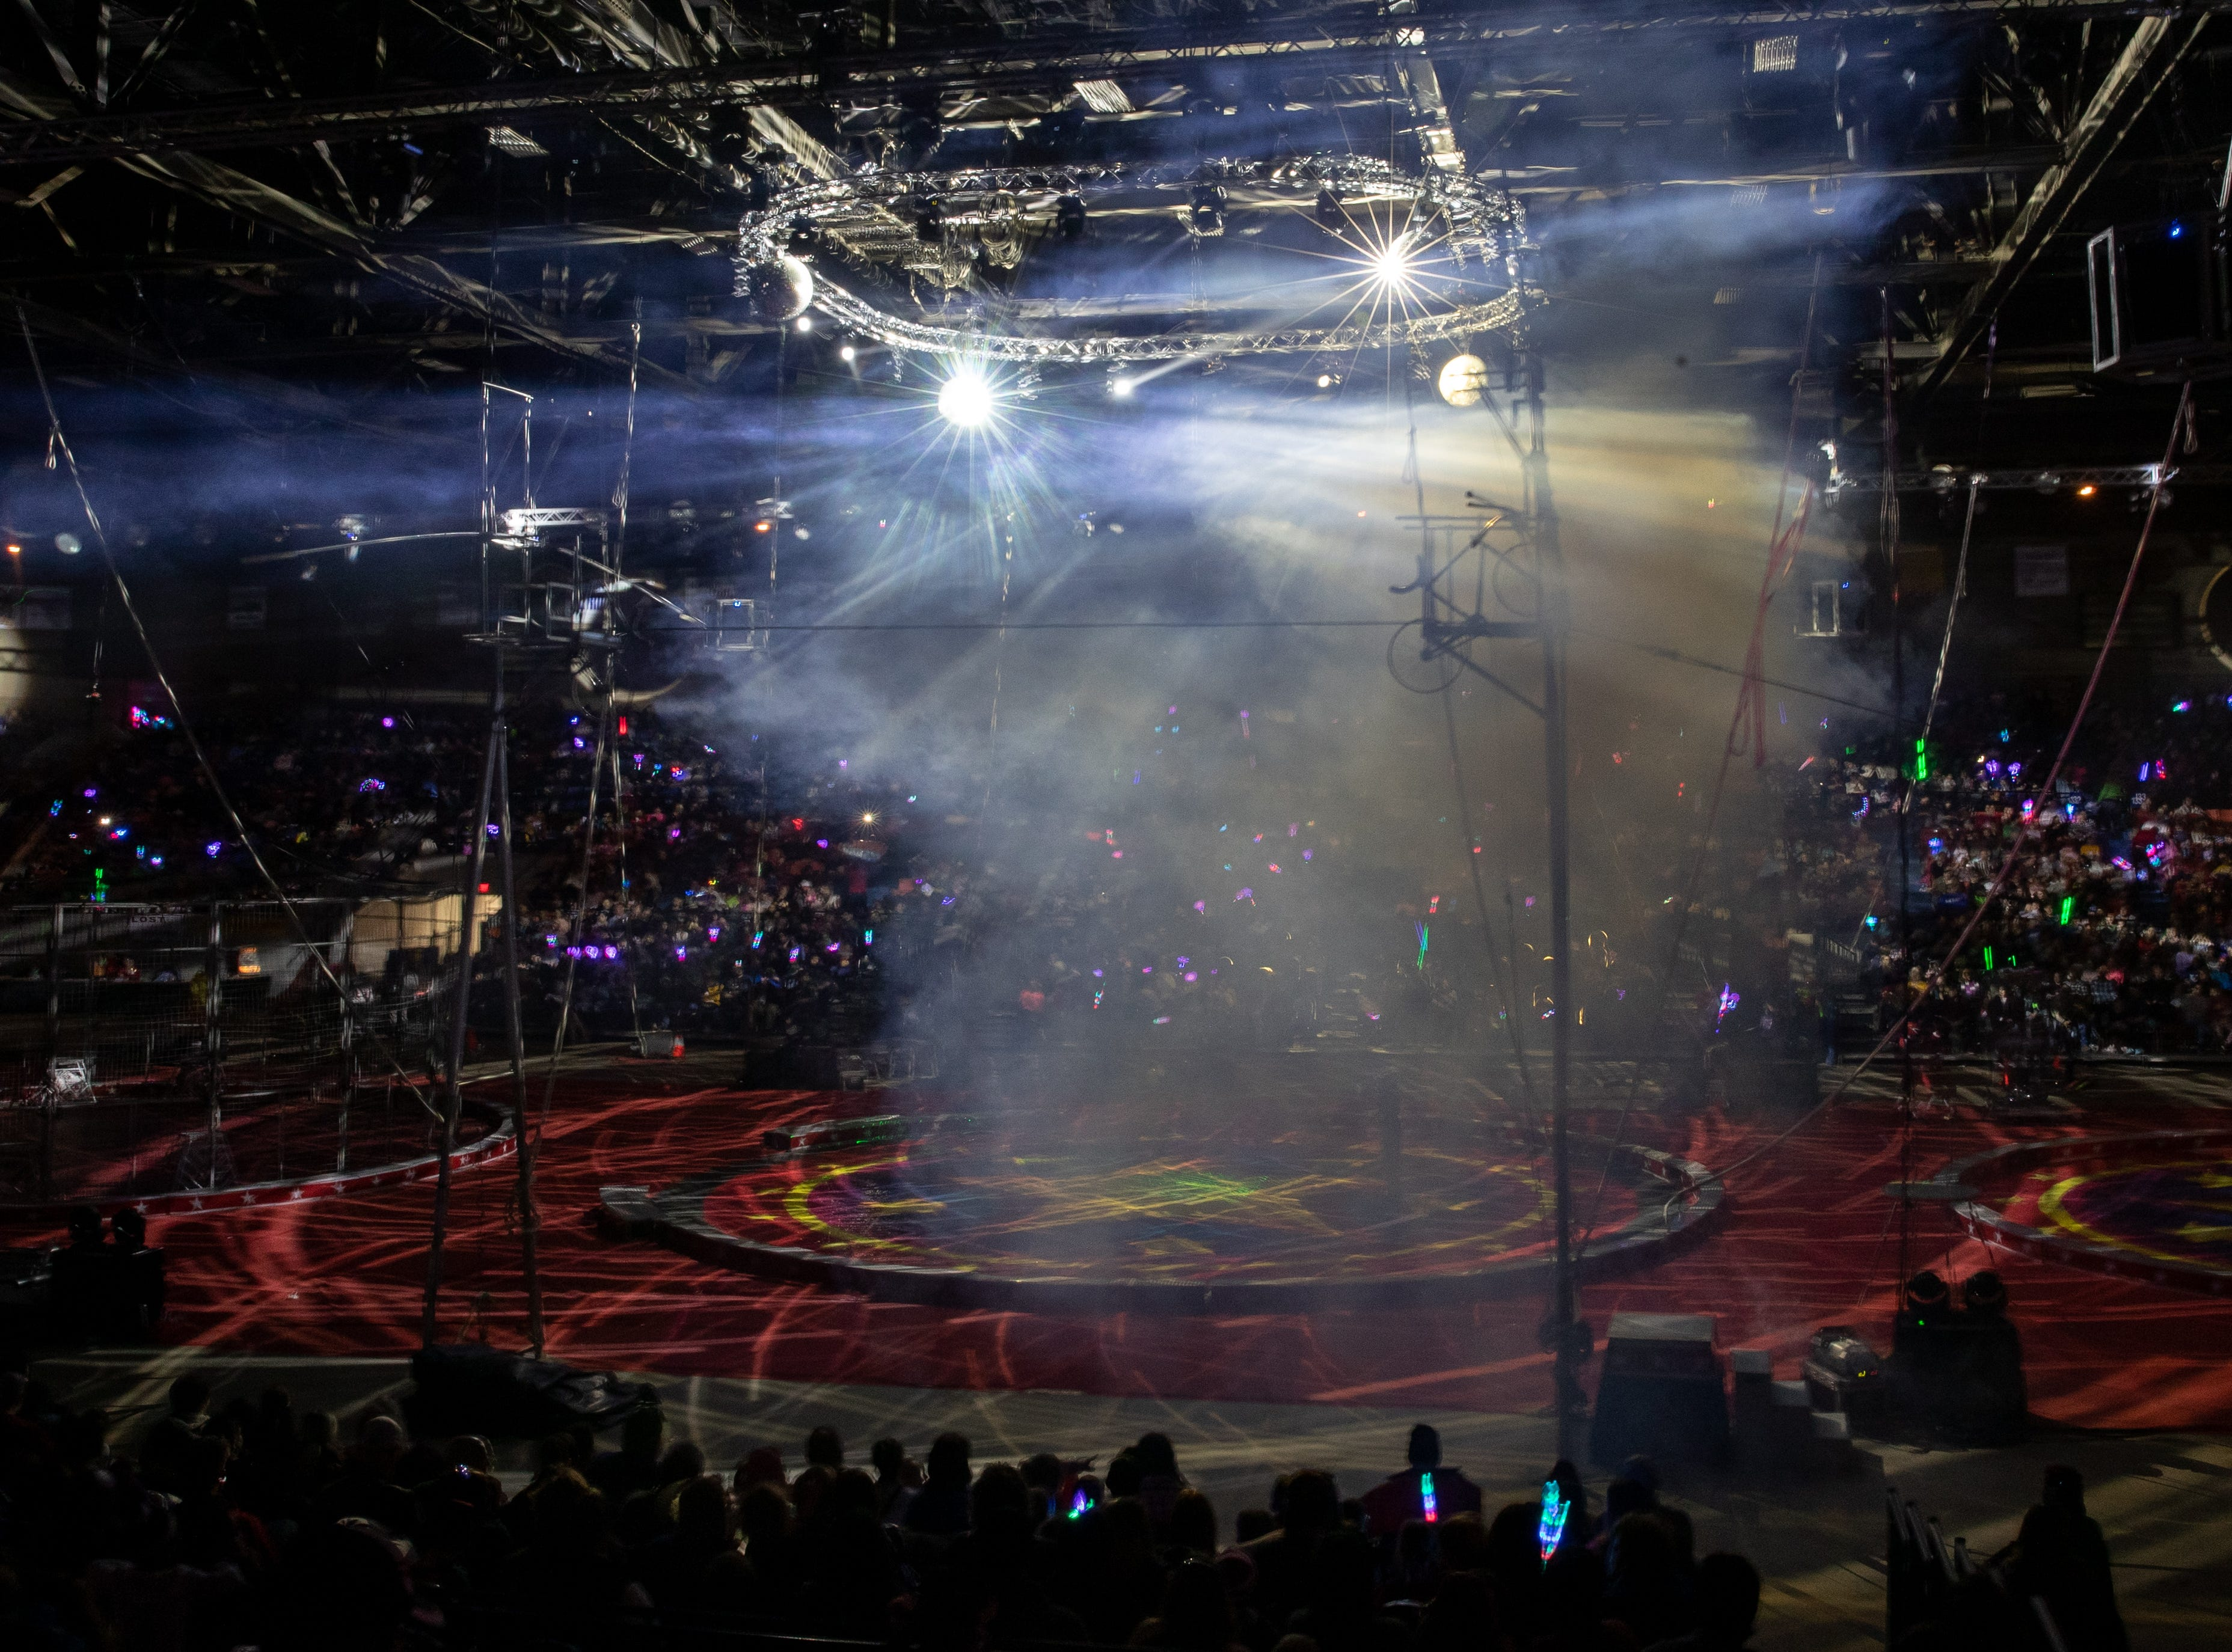 Swinging lights, disco balls, smoke and music fill Broadbent arena to signal the start of the Kosair Shrine Circus, Saturday, Feb. 9, 2019 in Louisville Ky.